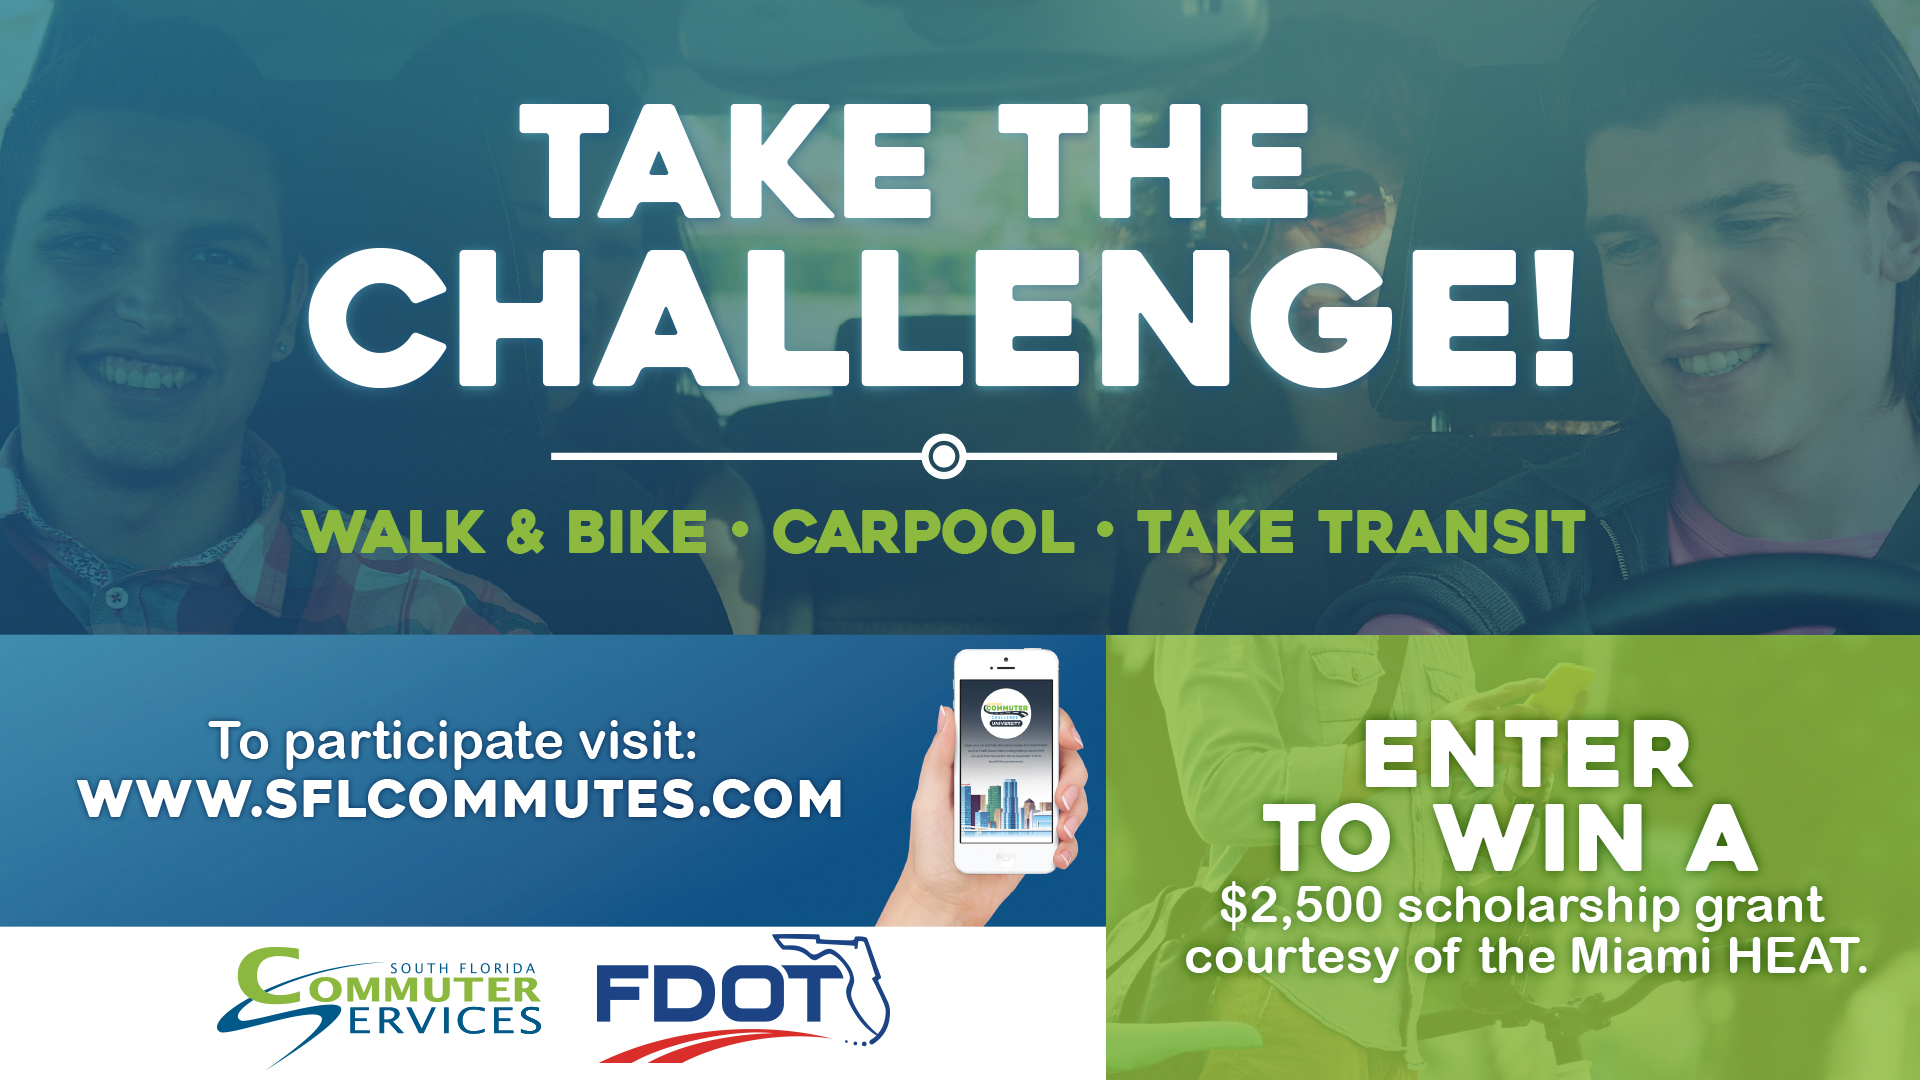 College Student? Participate in the University Commuter Challenge